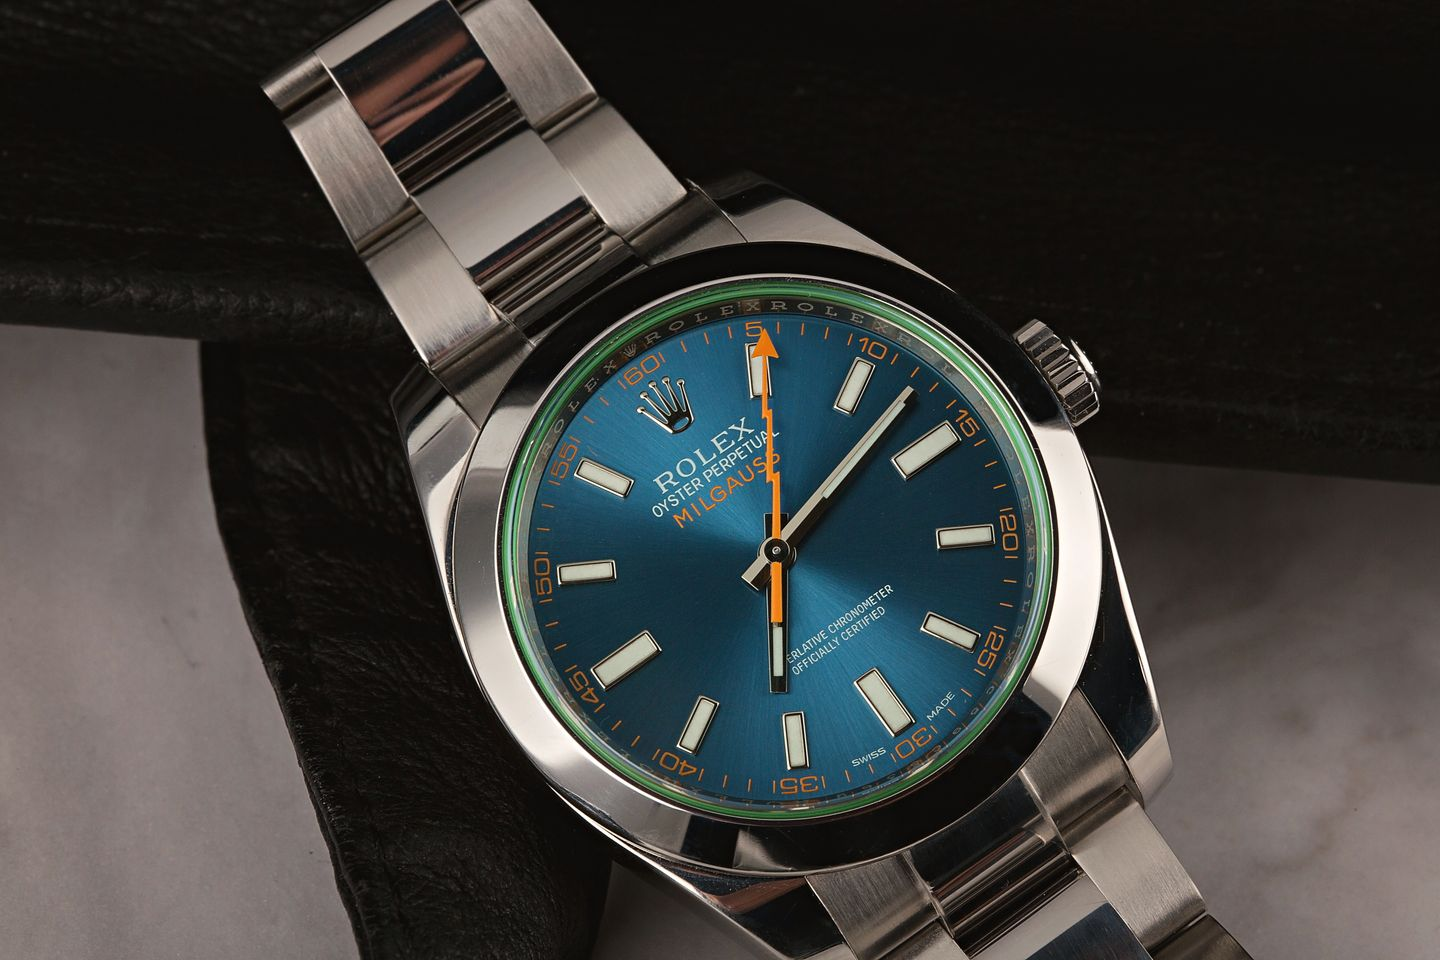 Are The Clear Crystal Rolex Milgauss Watches Discontinued? 116400GV Z-Blue Dial